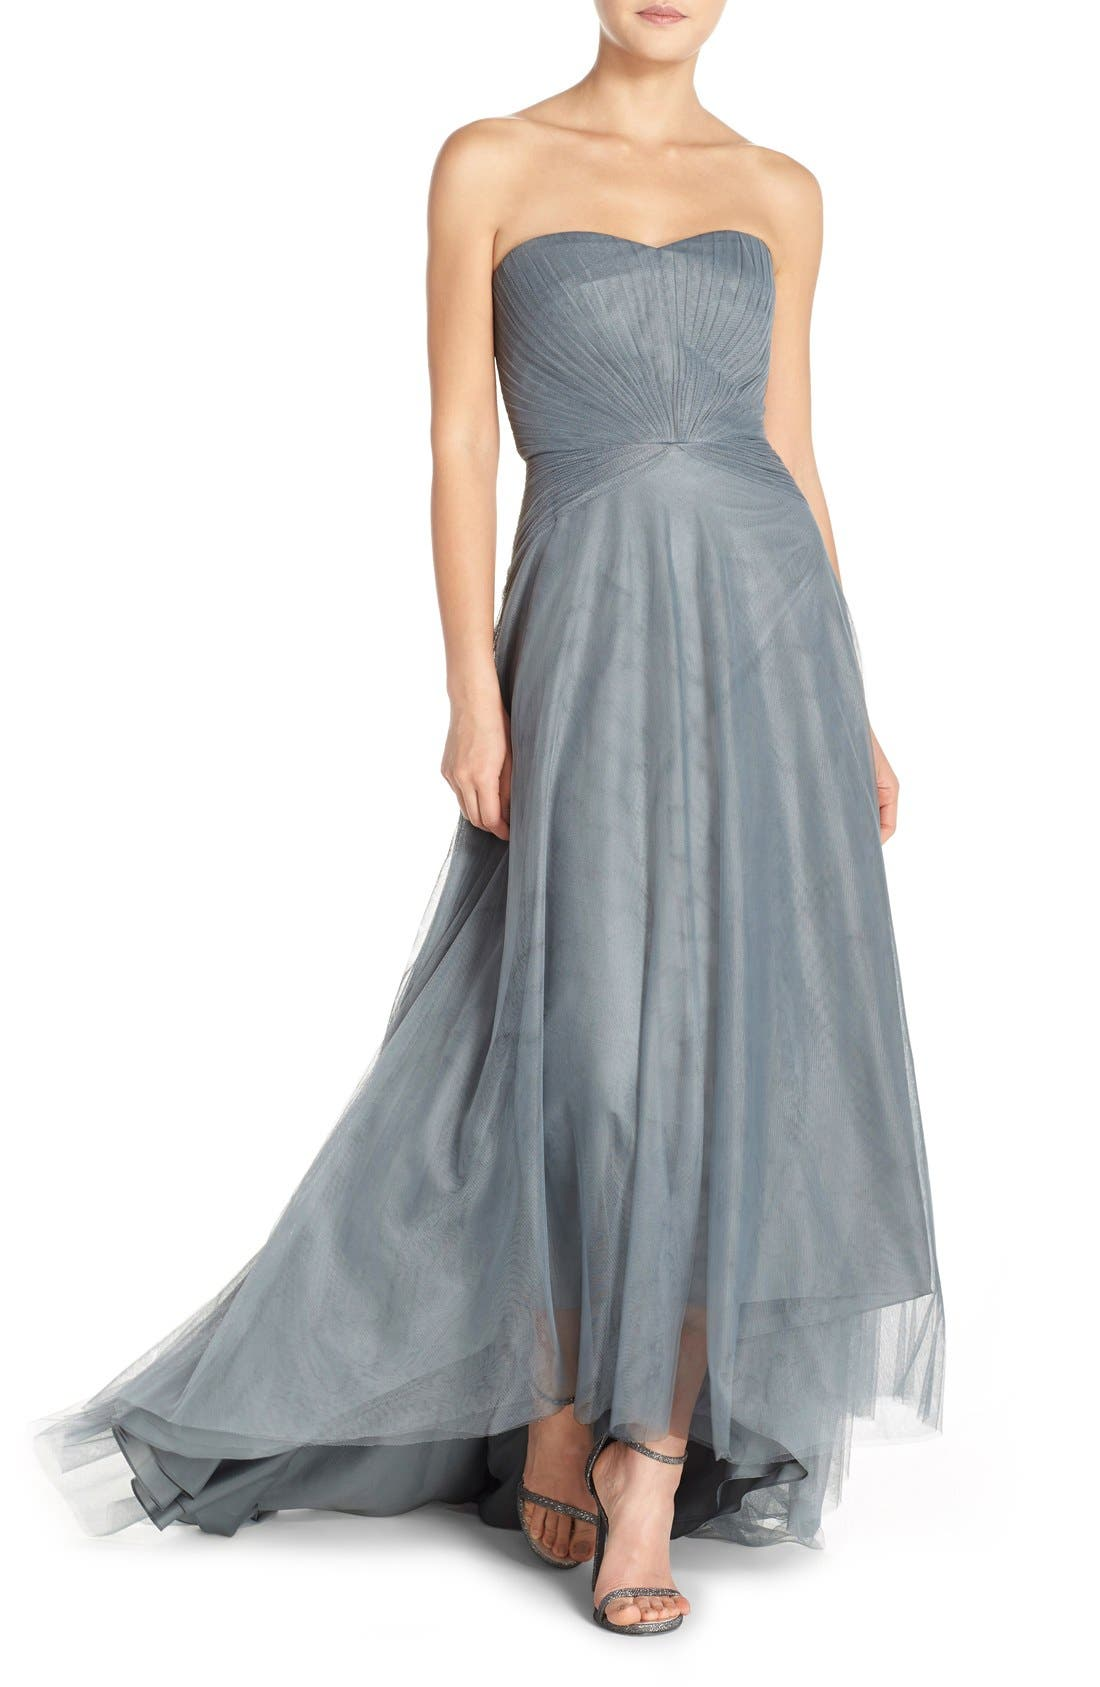 Main Image - Monique Lhuillier Bridesmaids Pleat Tulle Strapless Gown